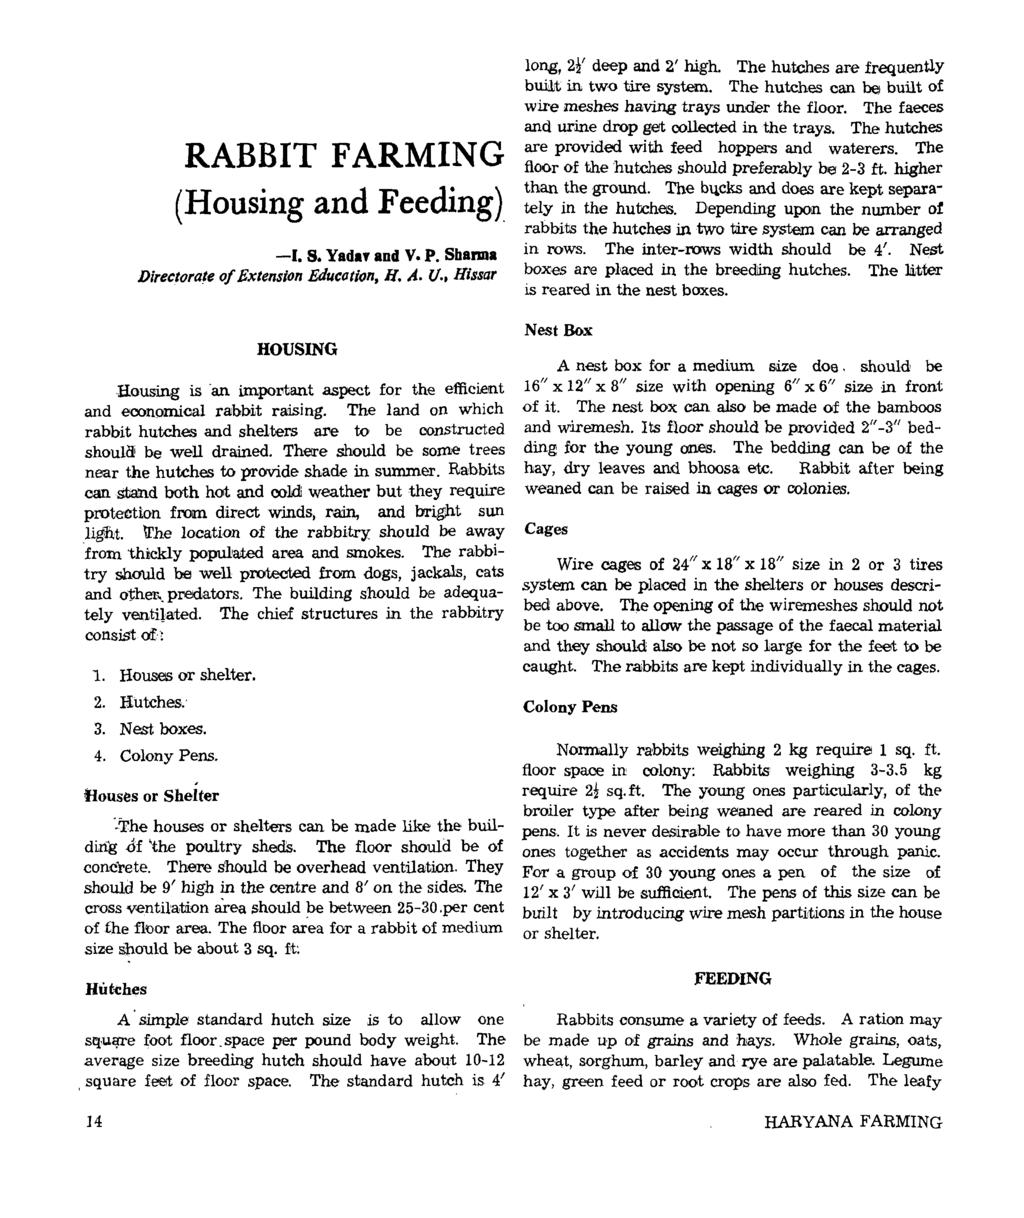 RABBIT FARMING (Housing and Feeding). -I. s. Yadaf and V. P. Sharma Directorate of Extension Education, H. A. U.